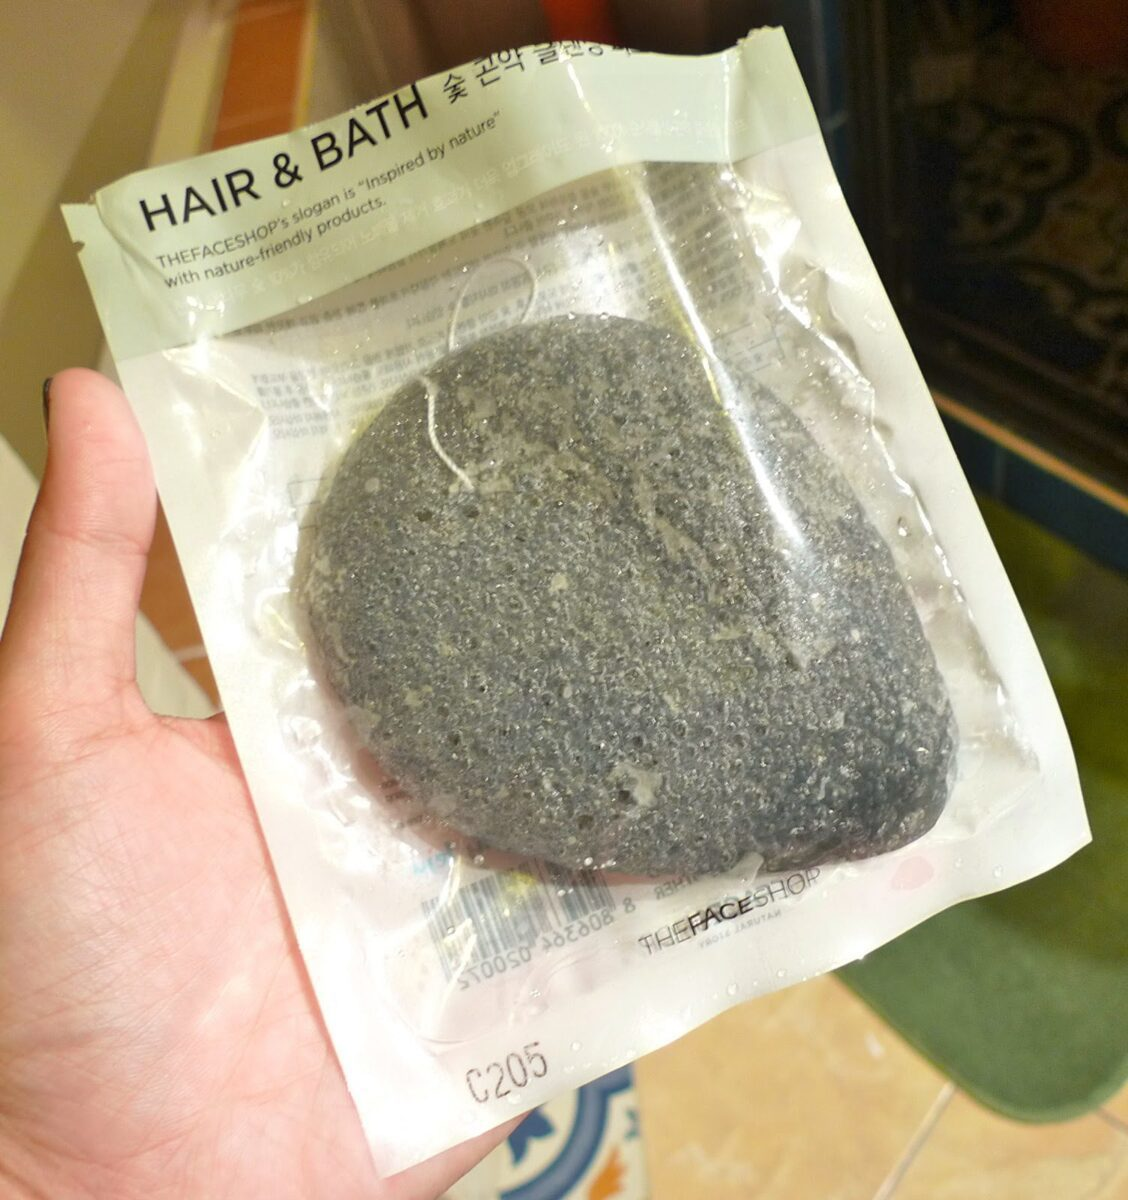 konjac-sponge-comes-in-special-package-to-help-keep-it-fresh-and-moist